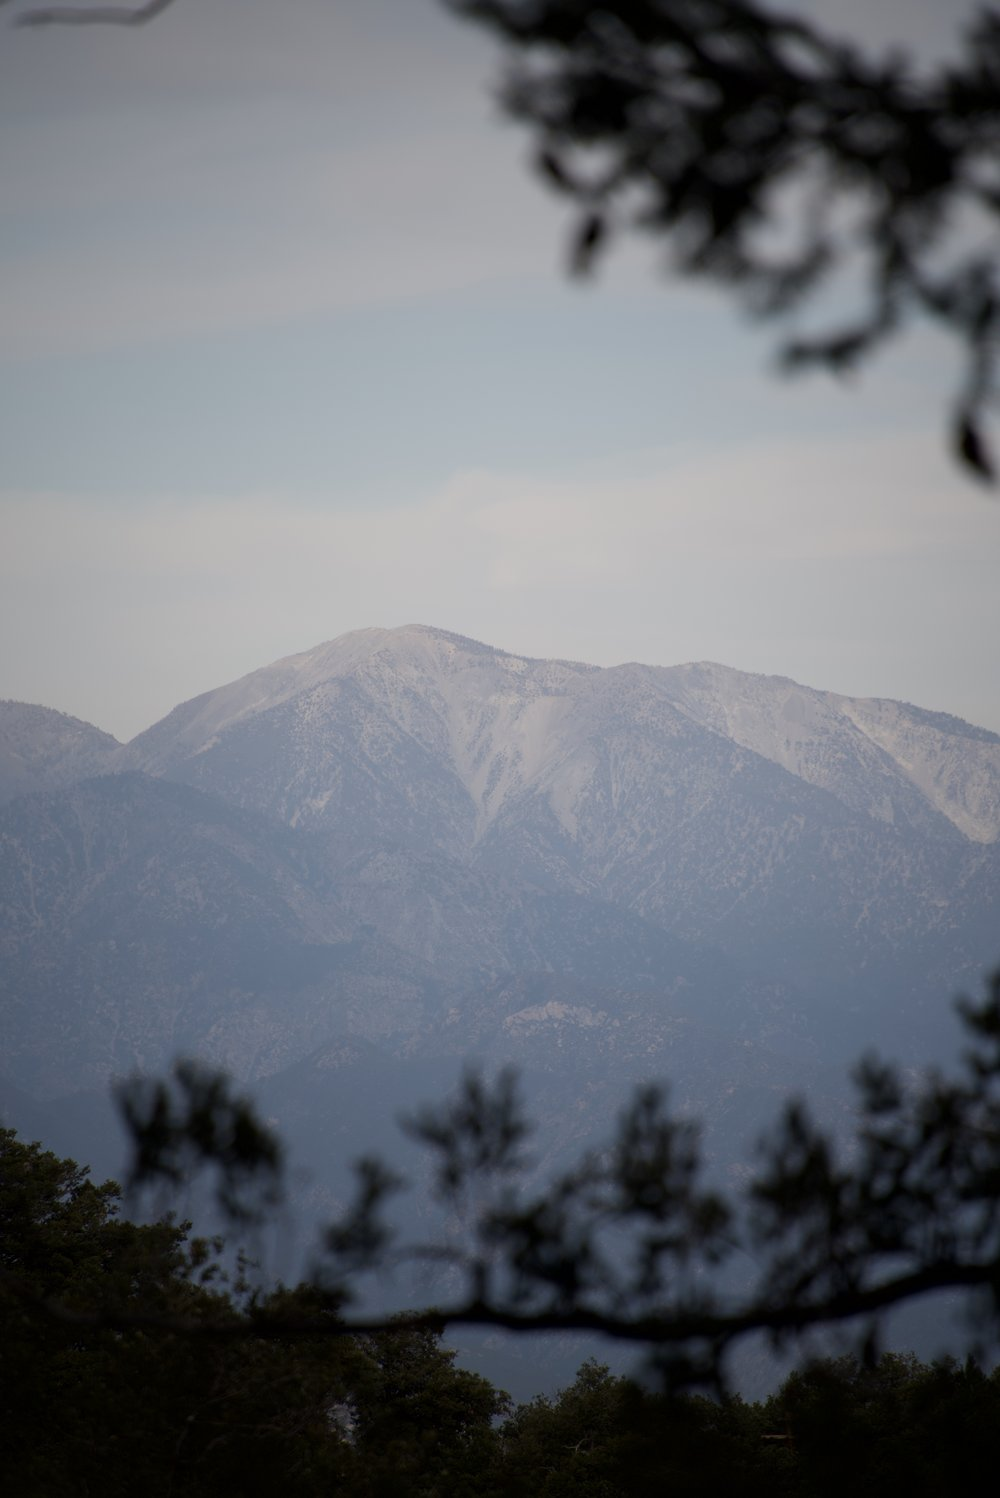 From the Mt Lowe railway tunnel looking towards Mt San Antonio. Also displaying some of the power of this 28-300mm lens